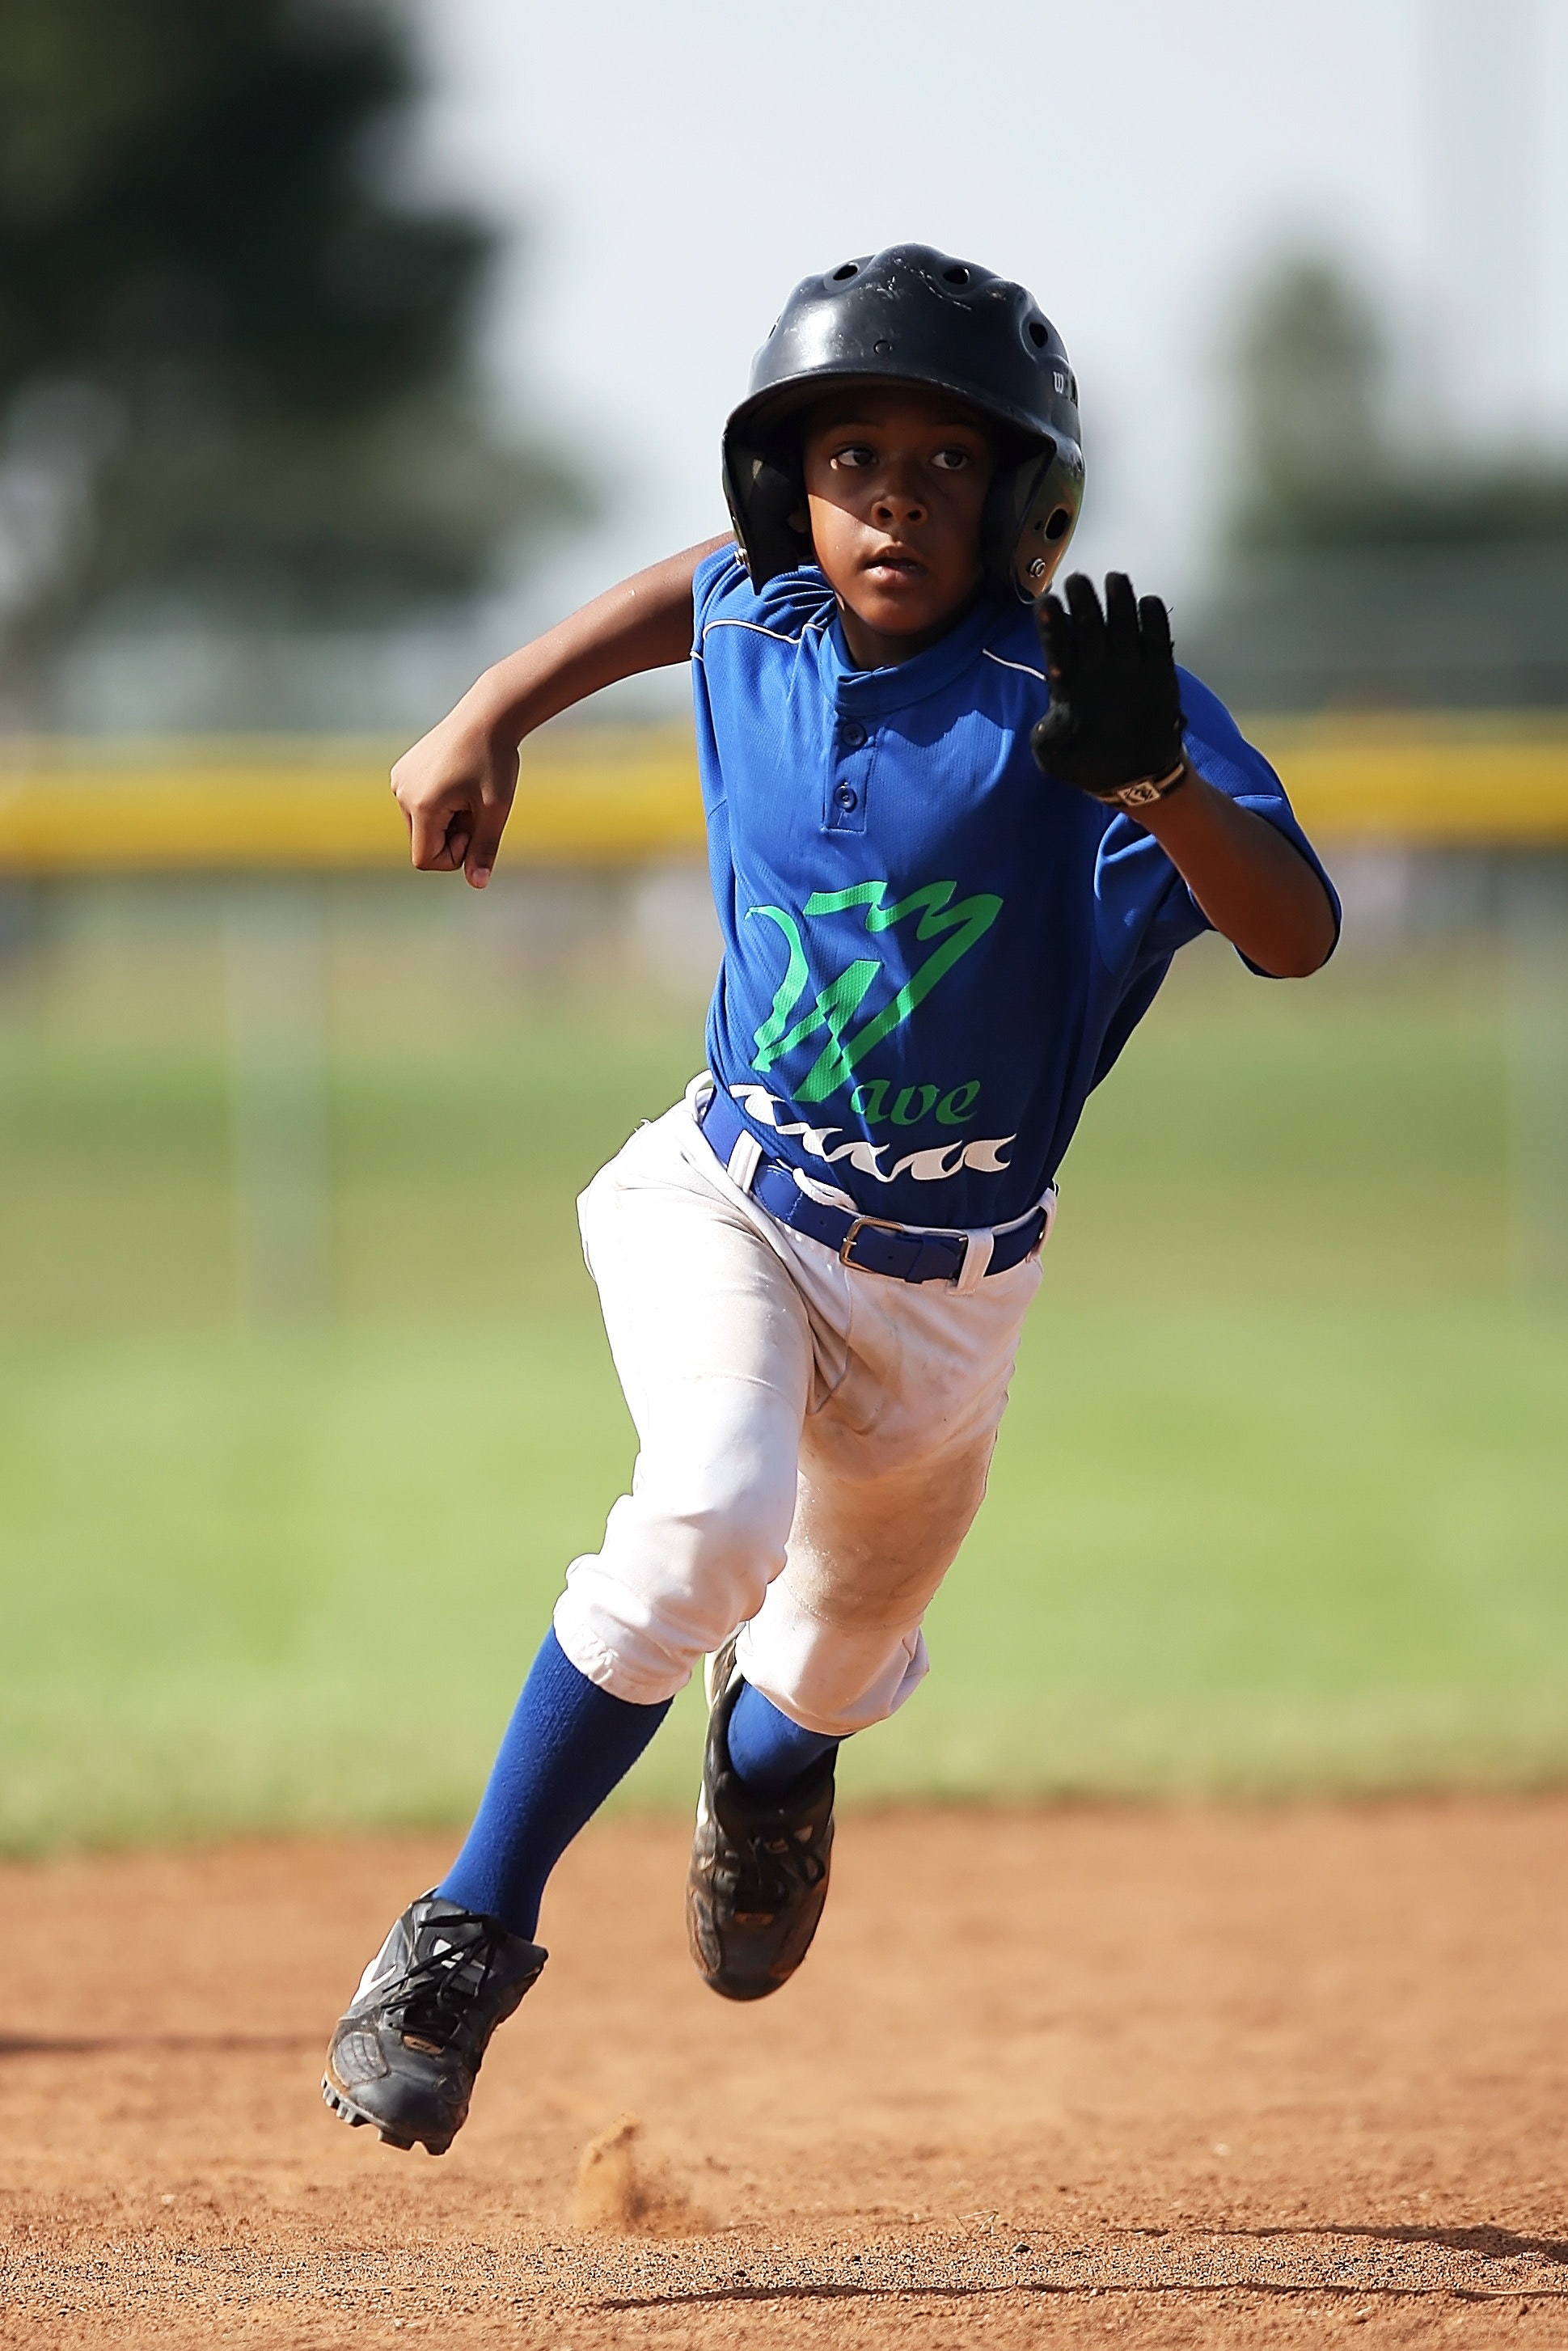 Boy in blue and white baseball jersey running on brown soil field during daytime photo